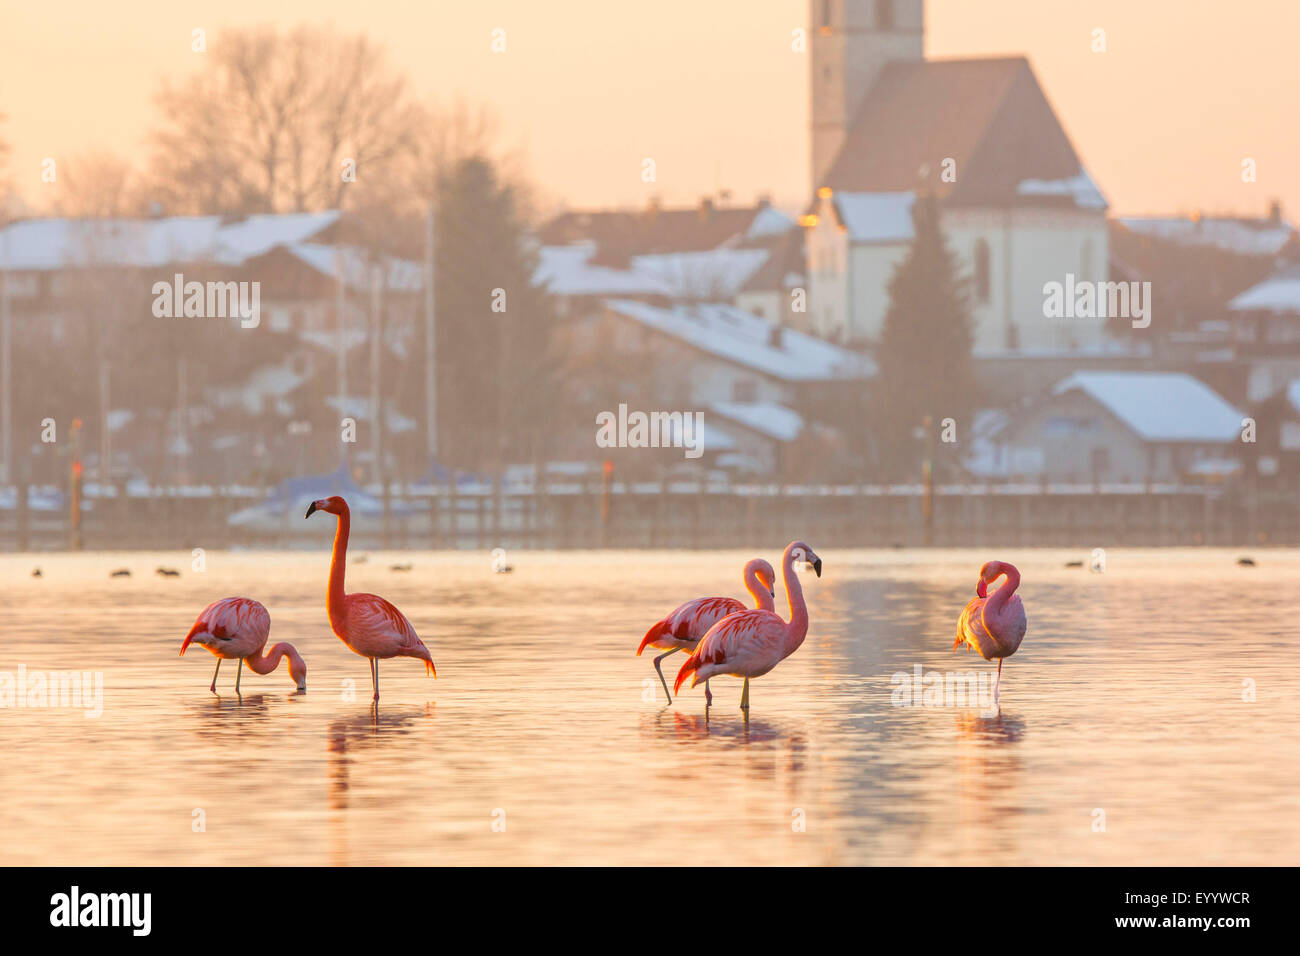 Chilean flamingo (Phoenicopterus chilensis), group stands in shallow water in front of village, Germany, Bavaria, - Stock Image